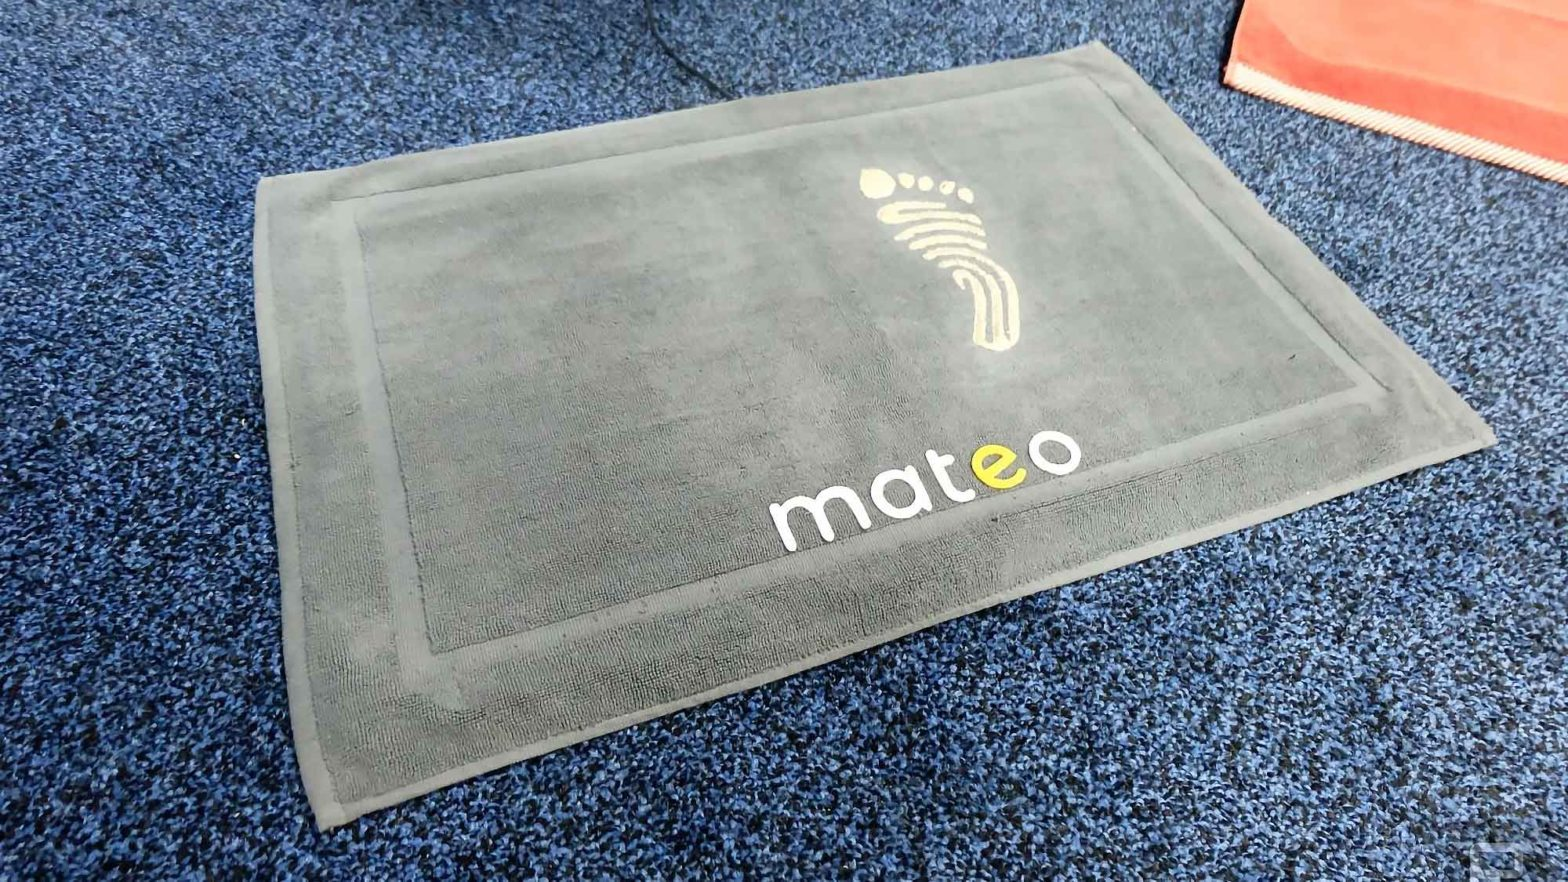 Mateo The Smart Bath Mat CES 2020